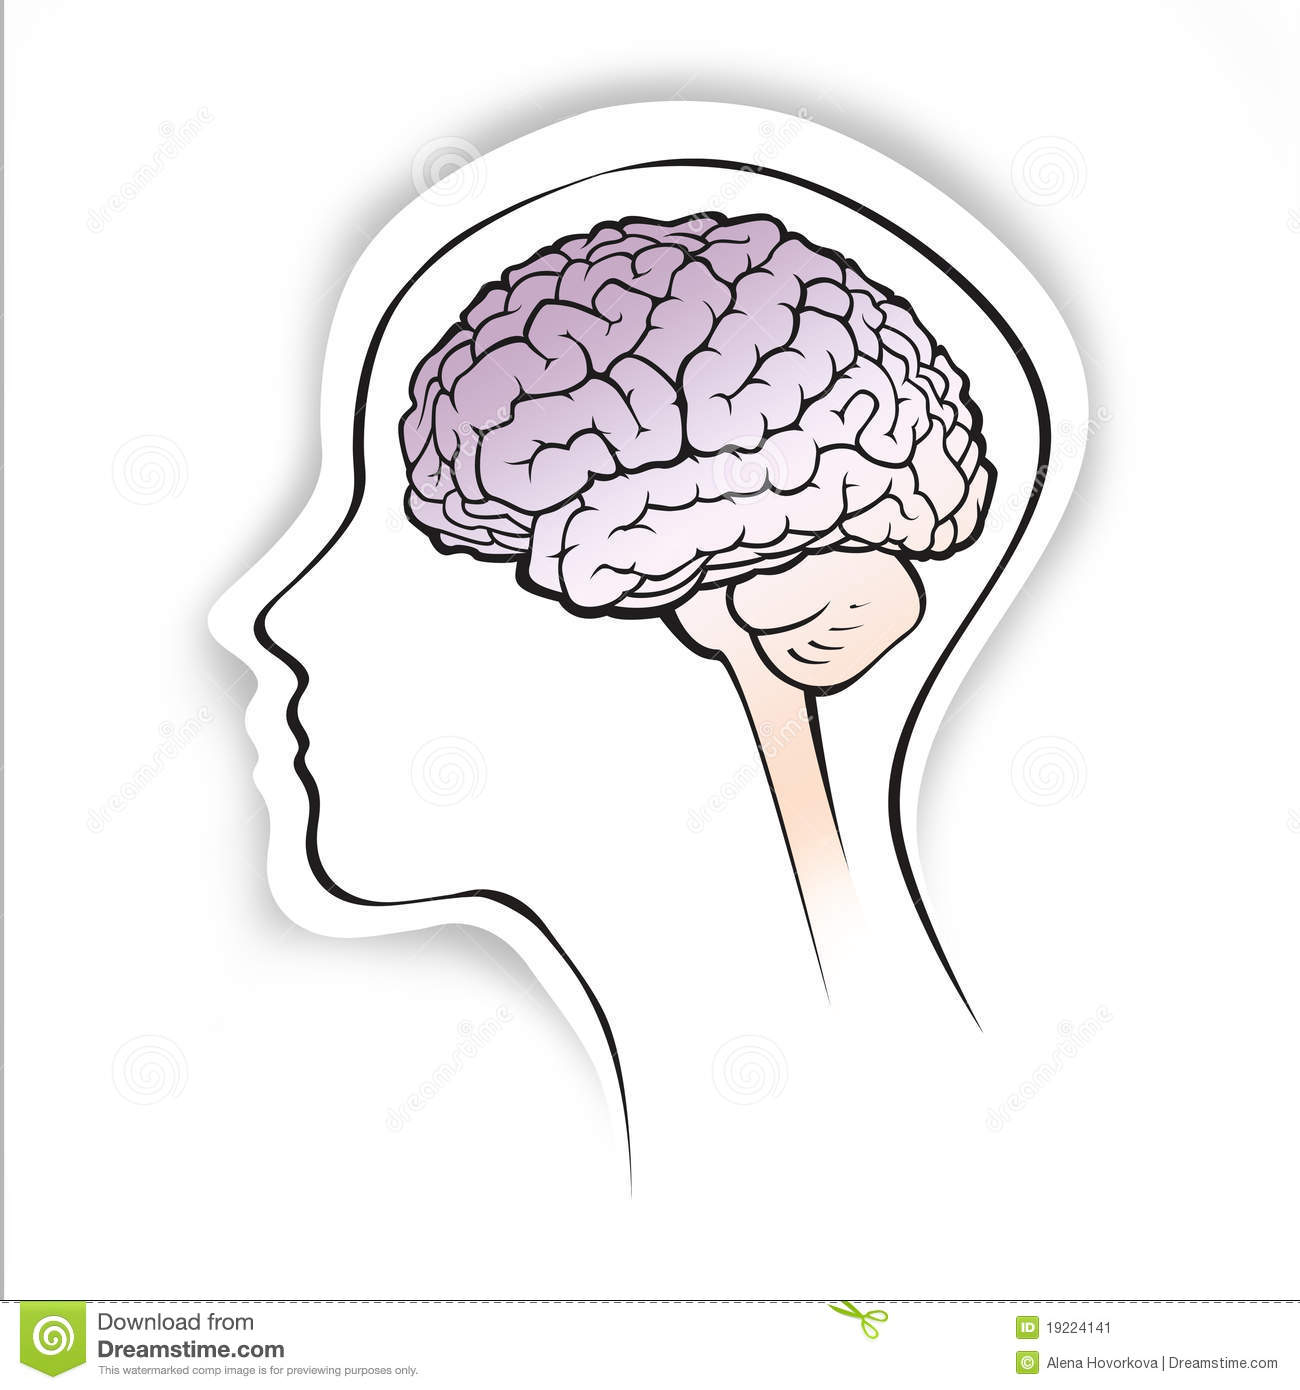 Human brain within a simple head silhouette stock illustration human brain within a simple head silhouette ccuart Image collections